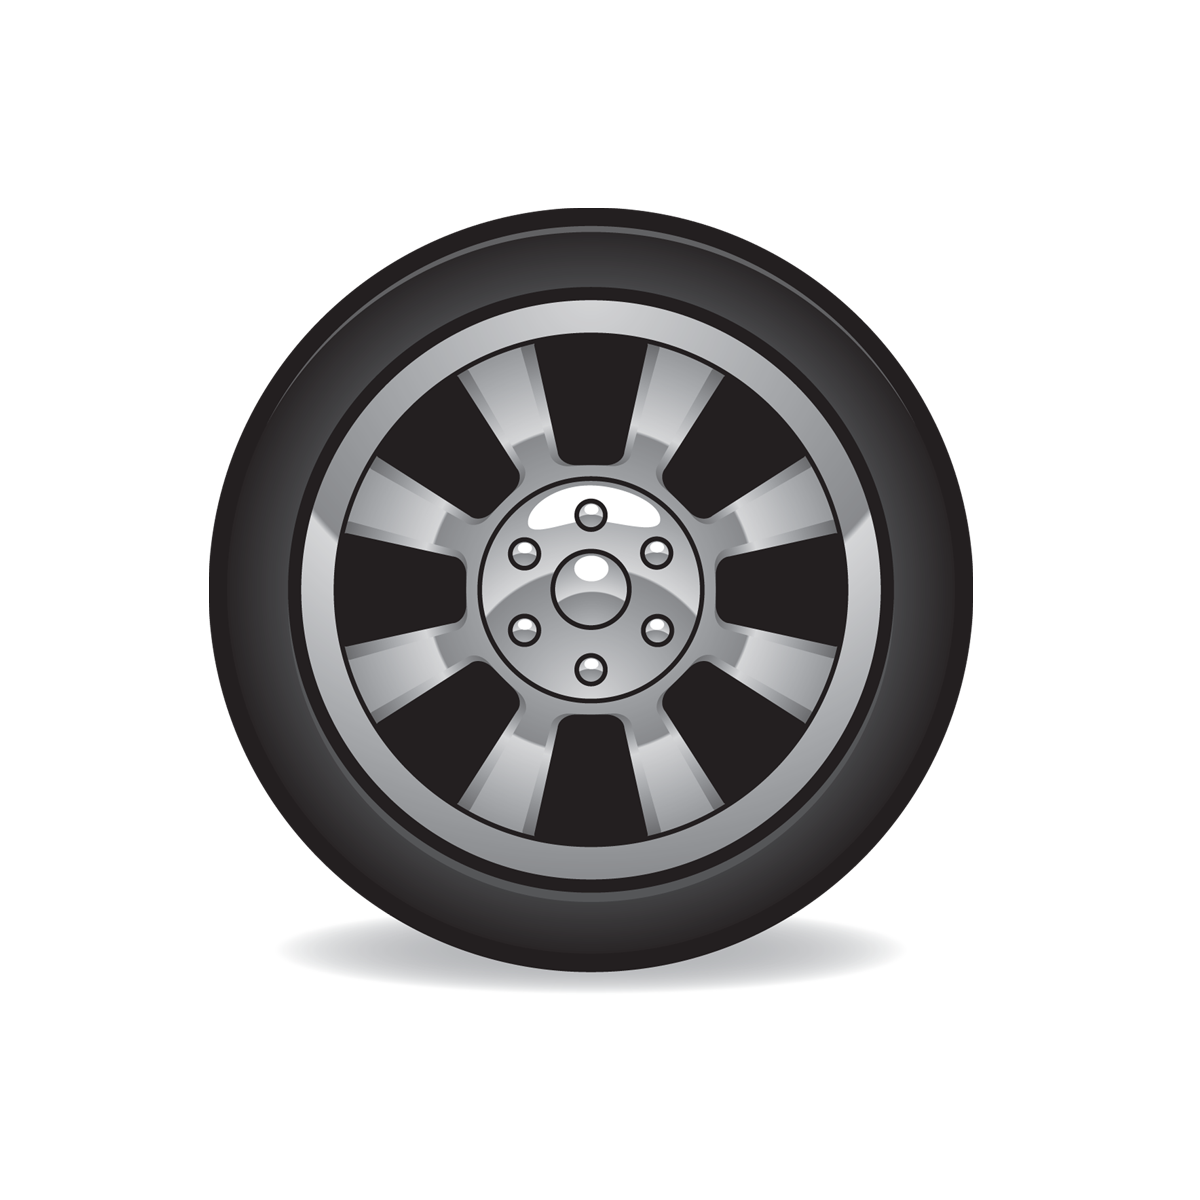 Free Tire Cliparts, Download Free Clip Art, Free Clip Art on Clipart ... graphic free download